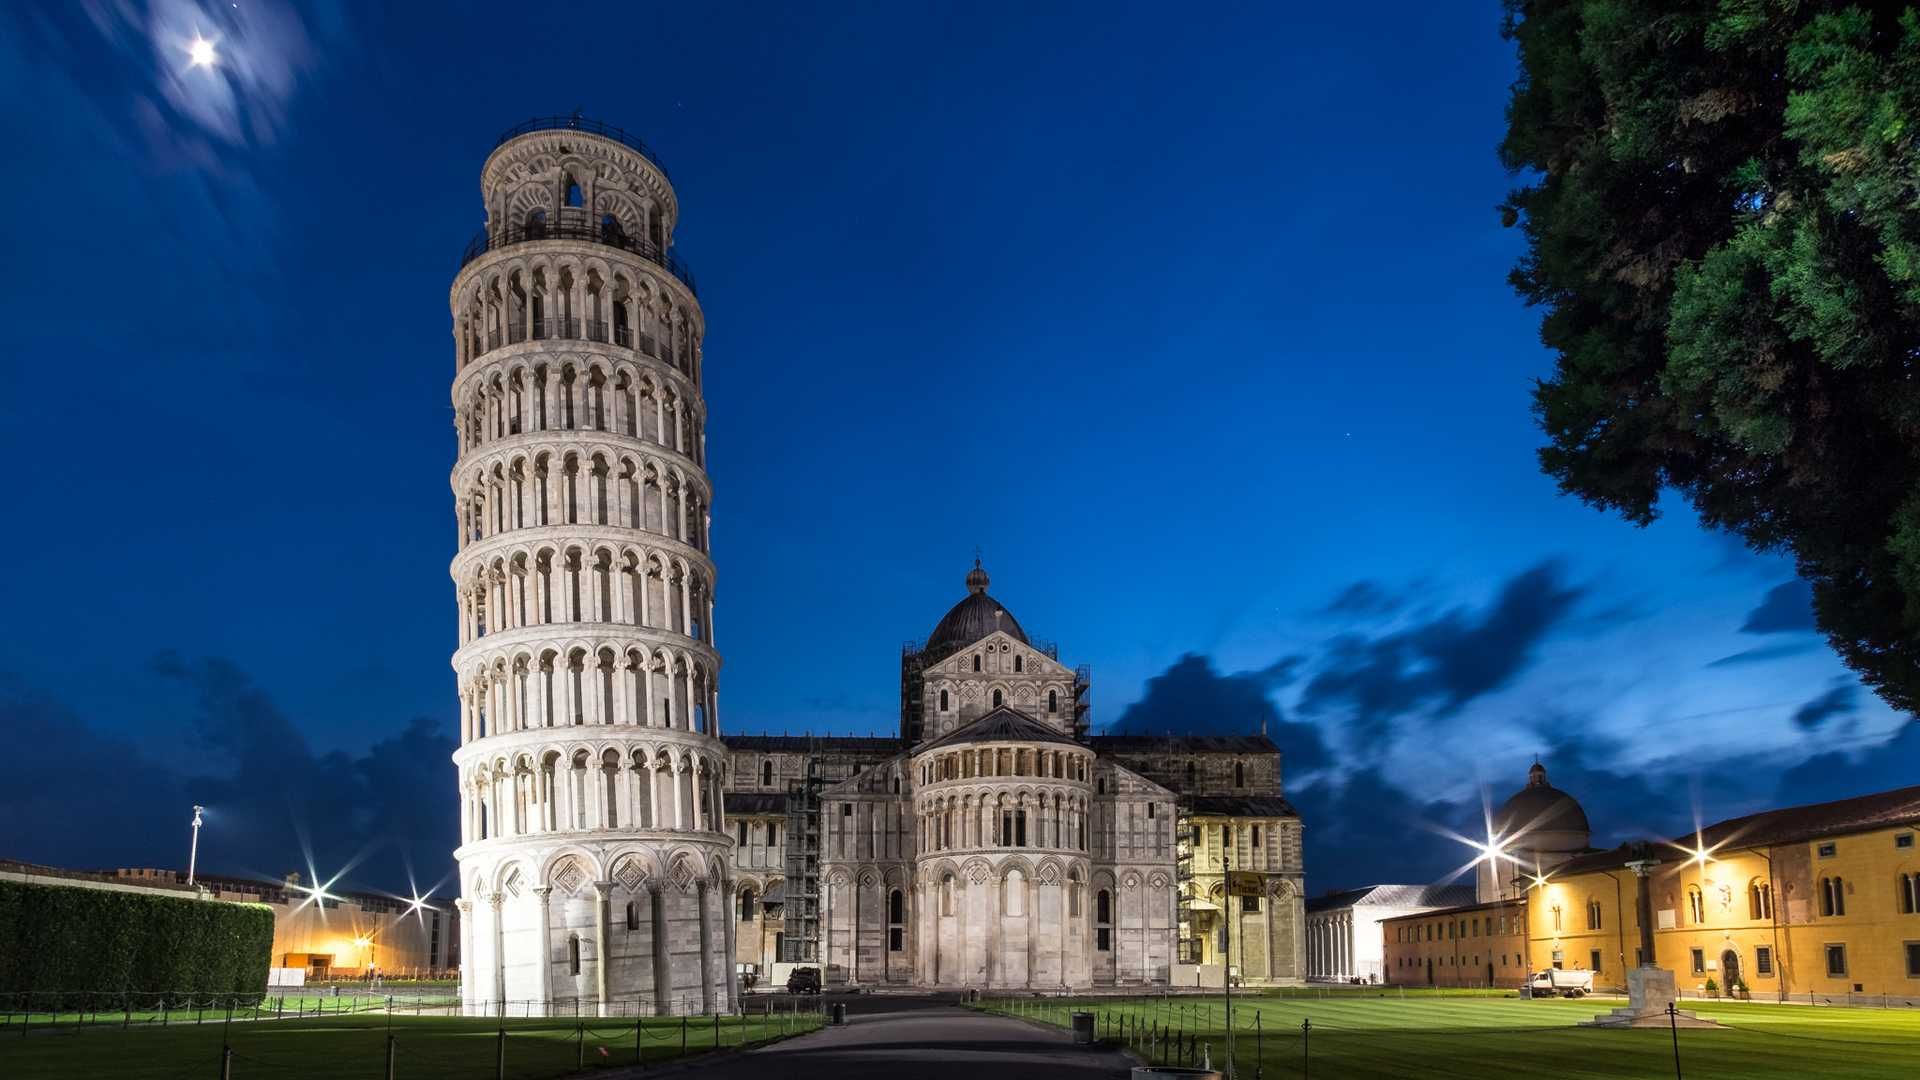 10-italy_leaning-tower-of-pisa